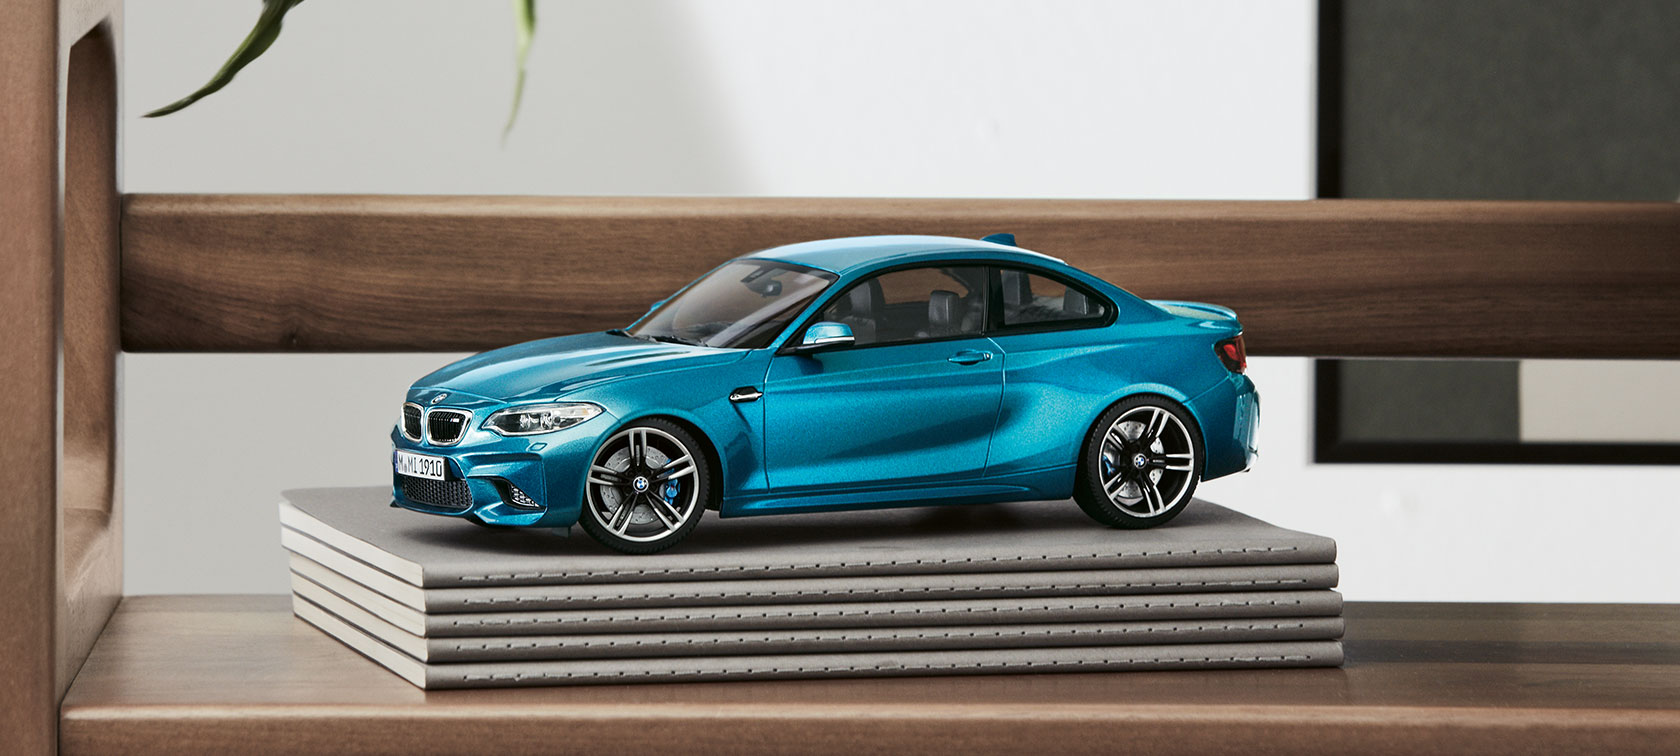 The focal point of the picture is a scale model from the BMW Miniatures Collection.